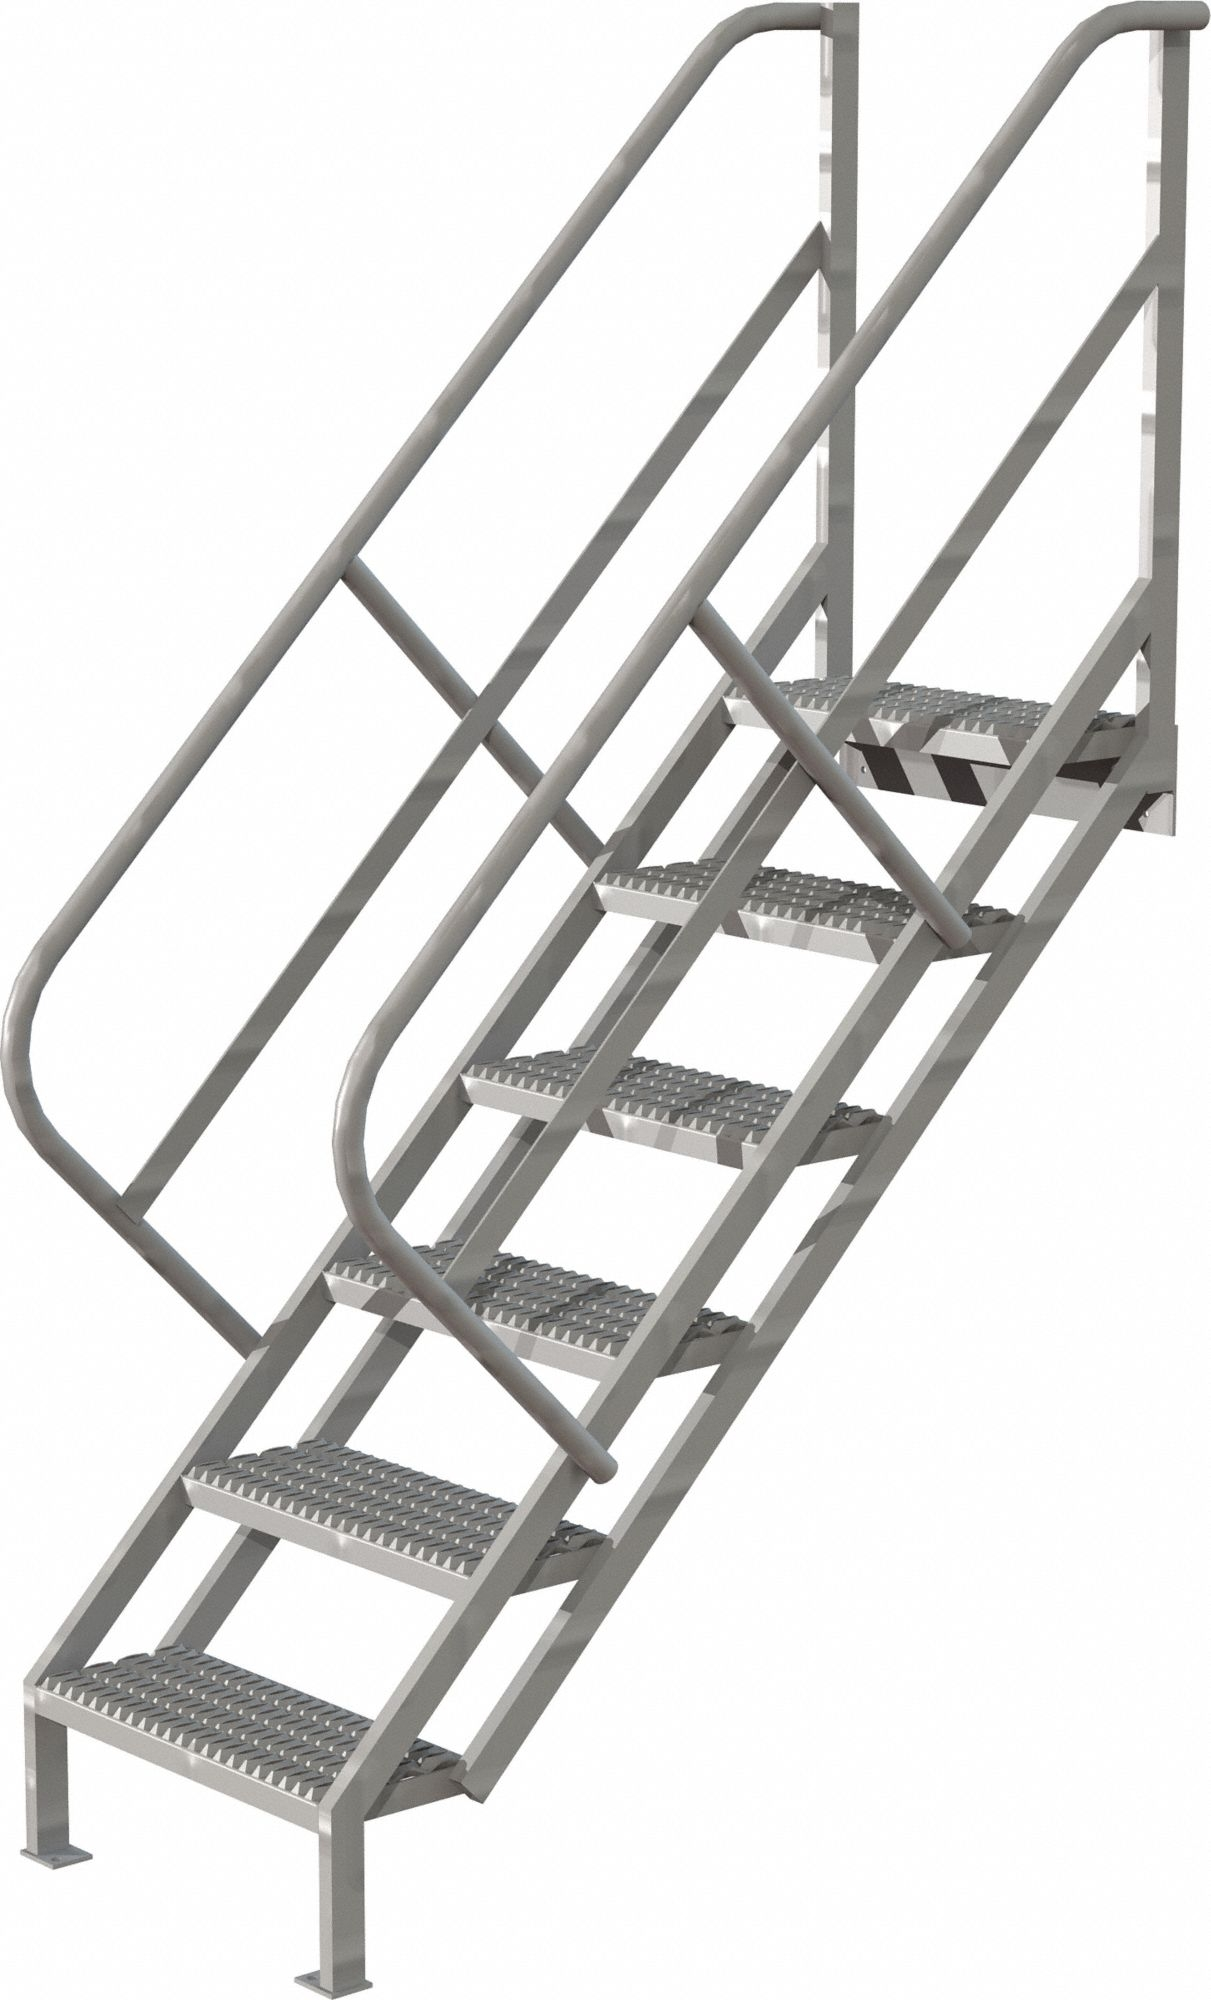 Tri Arc Steel Stair Unit 57 In Top Step Height 450 Lb Load   Steel Steps For Stairs   Chequer Plate   Fabricated   Wire Mesh   Prefabricated   Corrugated Metal